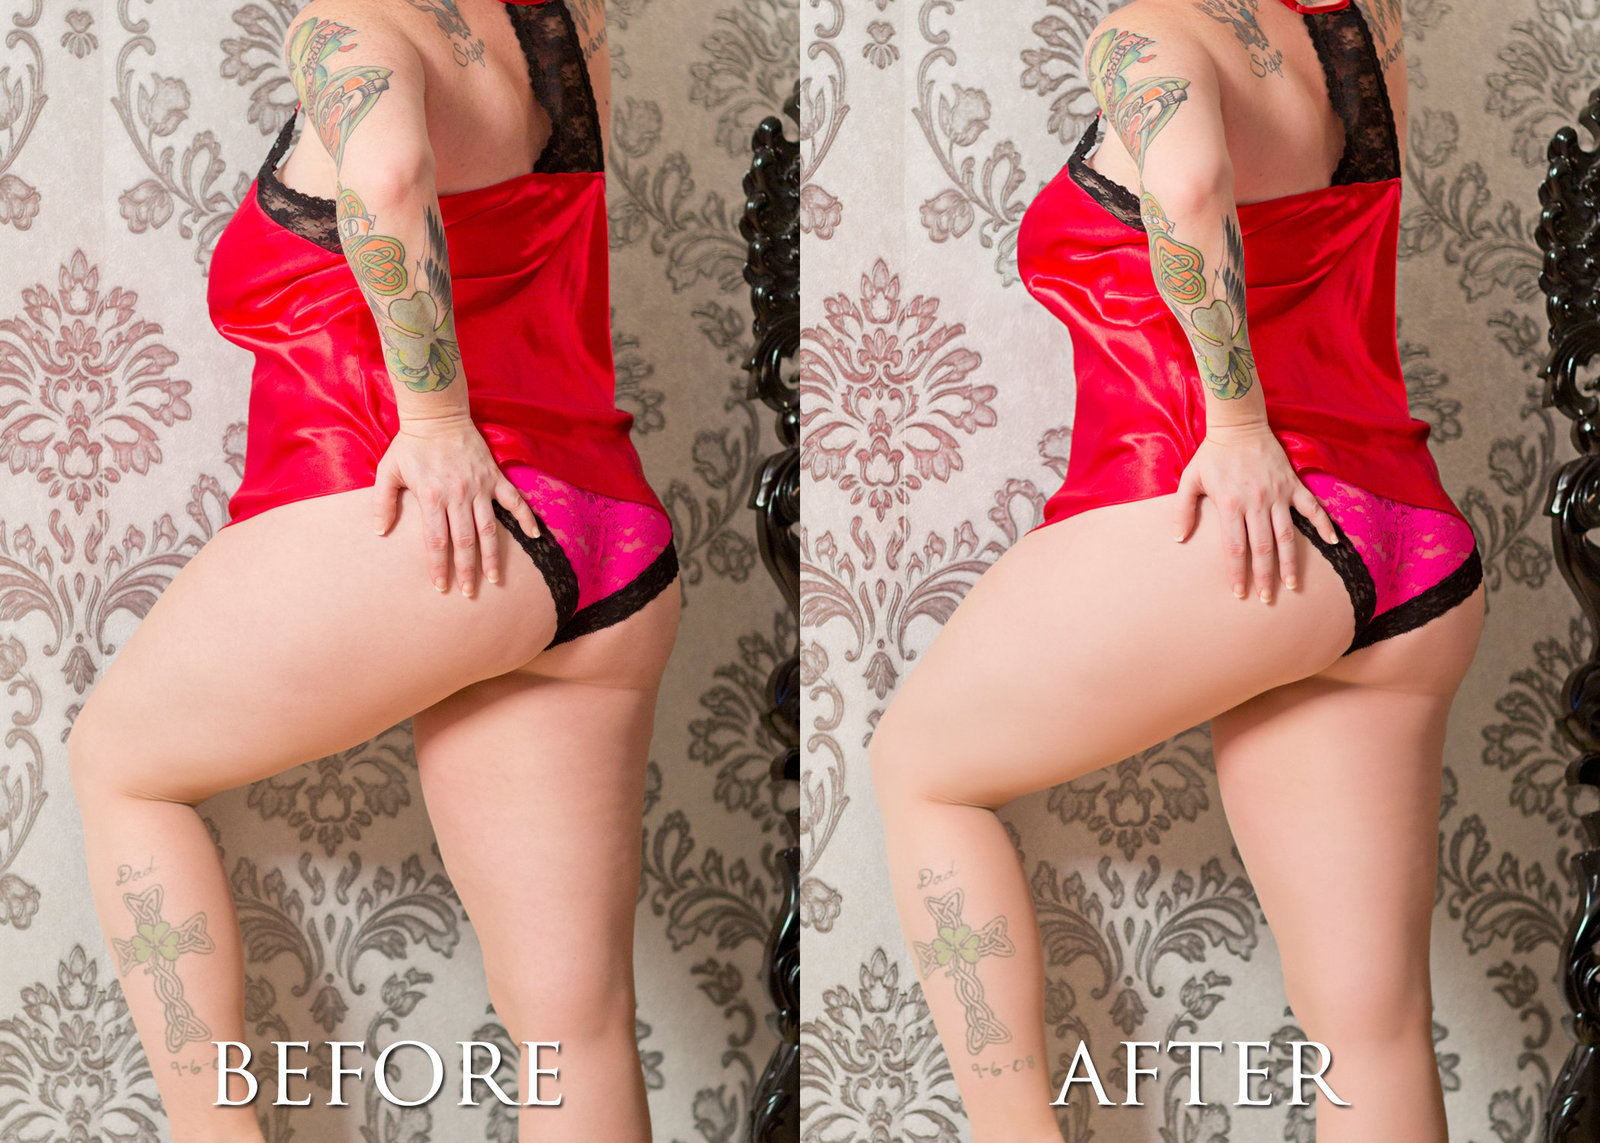 Before and After Retouch_11